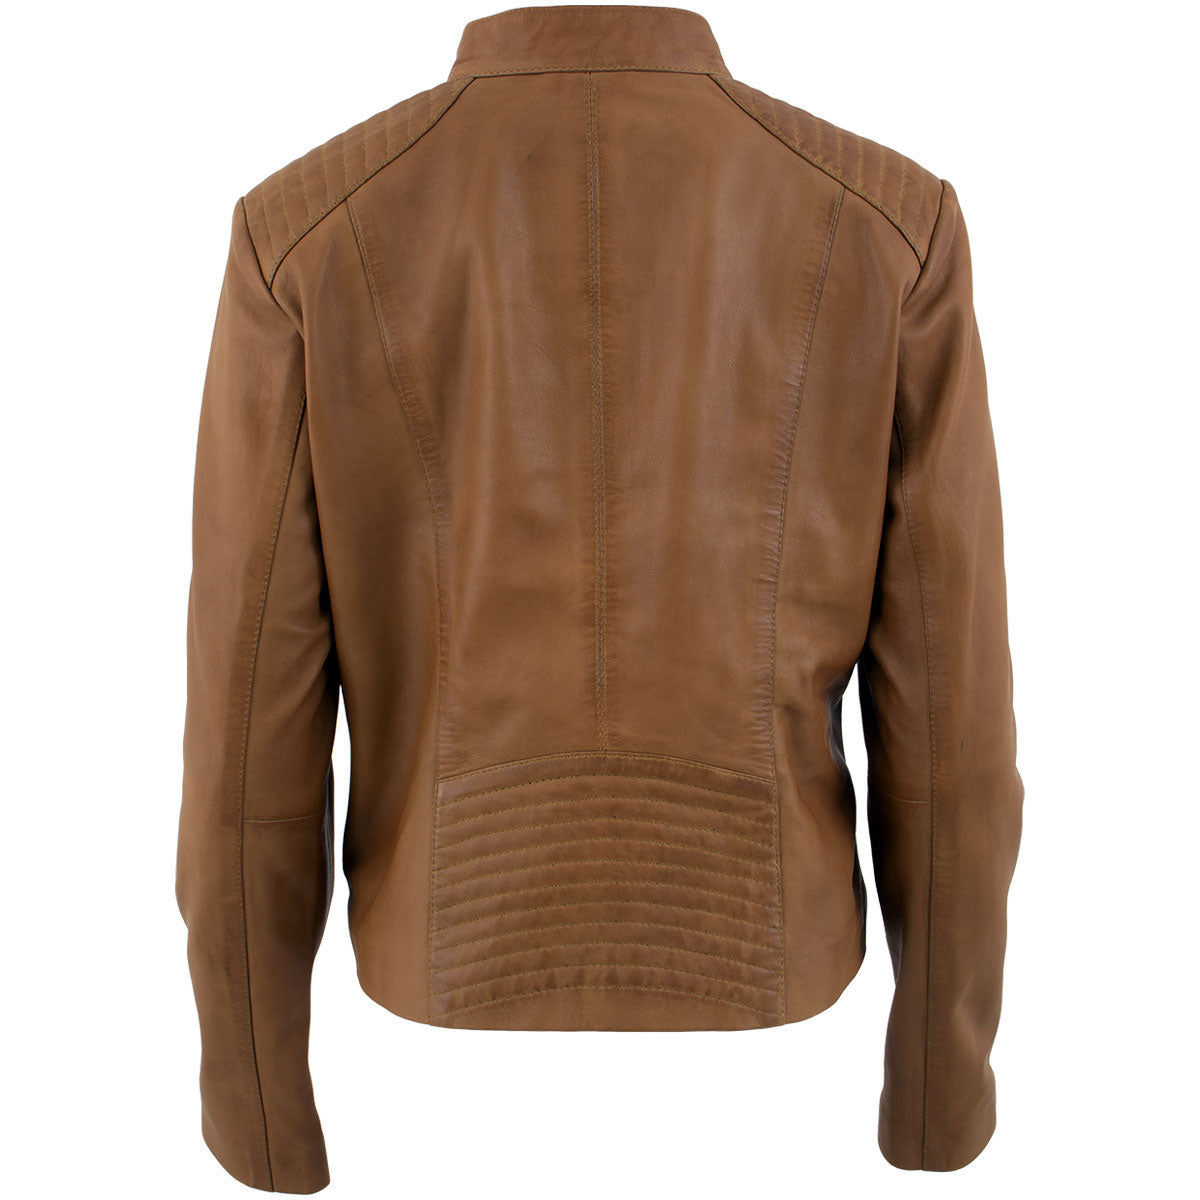 Xelement B91058 Ladies 'Keeper'Cognac Leather Scuba Style Jacket with